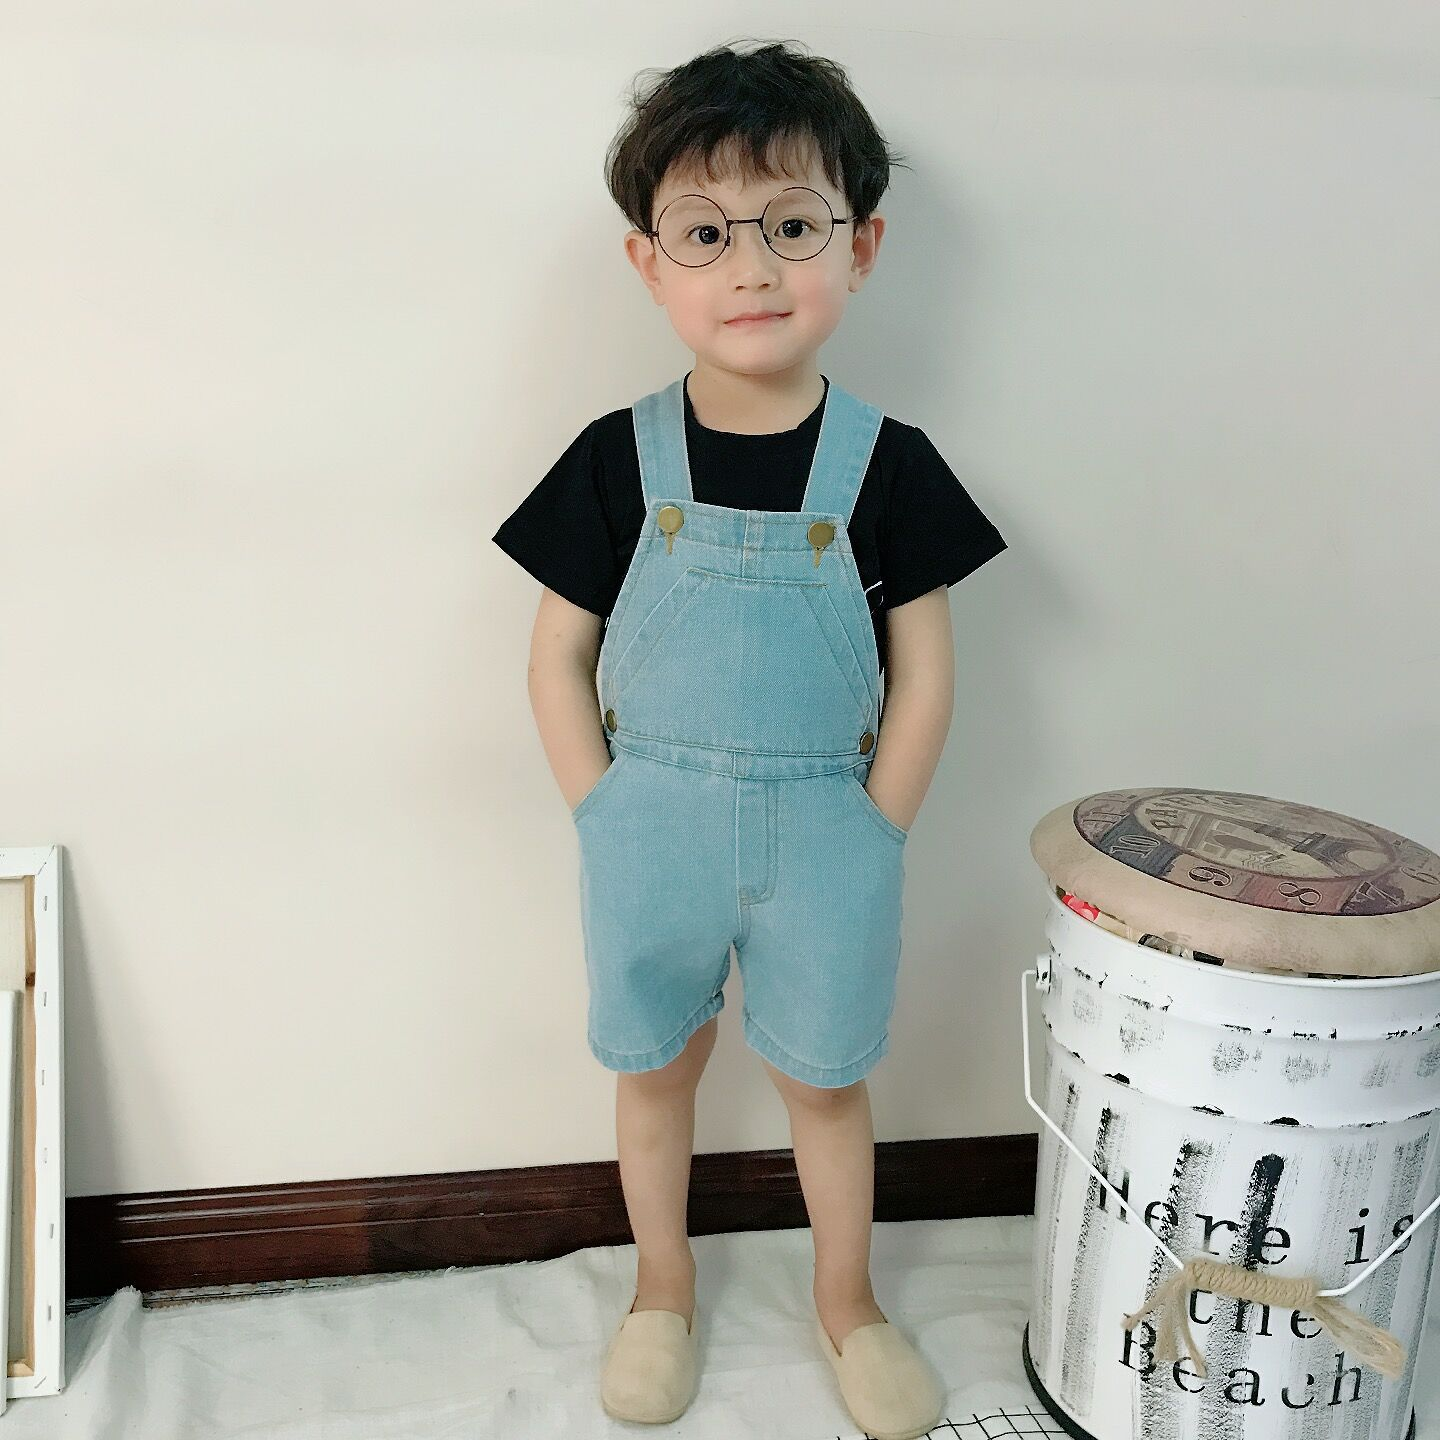 09303b8f331c Children Summer Overalls Shorts 2018 New Baby Boys Jeans Pants Kids Trousers  Denim Jean Baby Girls Suspender Short Fashion Jeans-in Overalls from Mother  ...